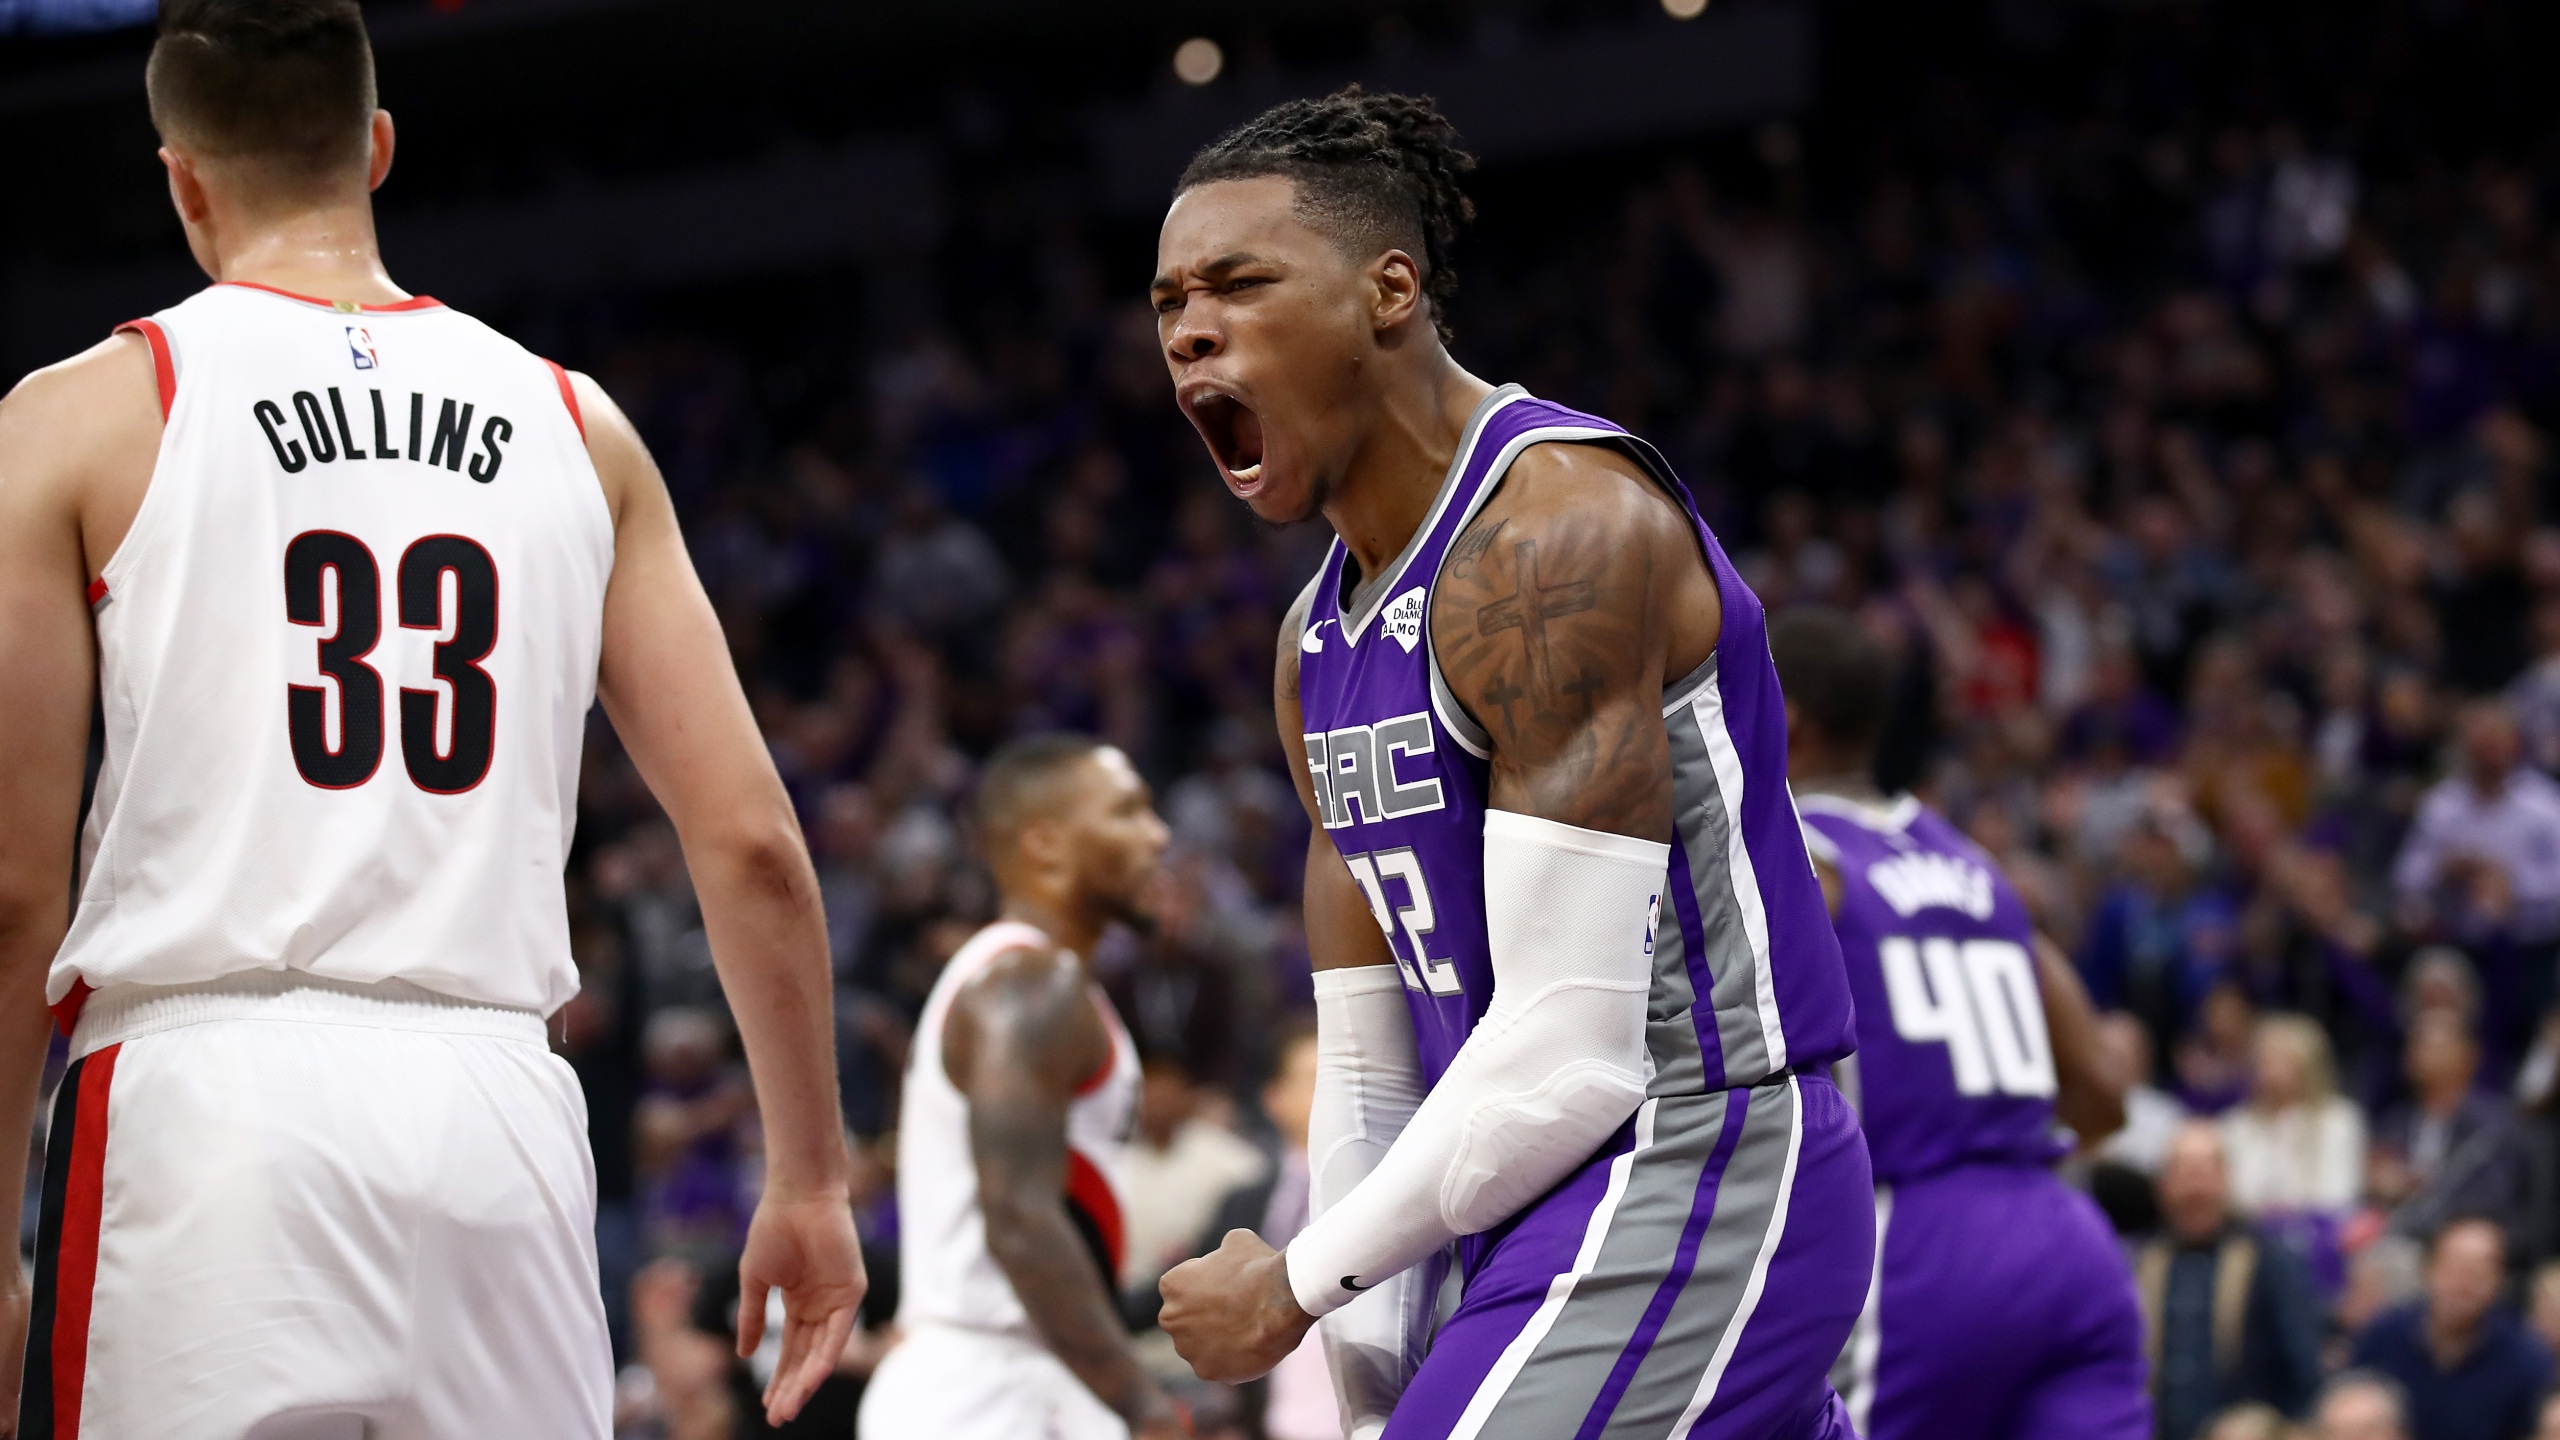 Richaun Holmes #22 of the Sacramento Kings reacts after dunking the ball against the Portland Trail Blazers at Golden 1 Center on Oct. 25, 2019 in Sacramento. (Ezra Shaw/Getty Images)